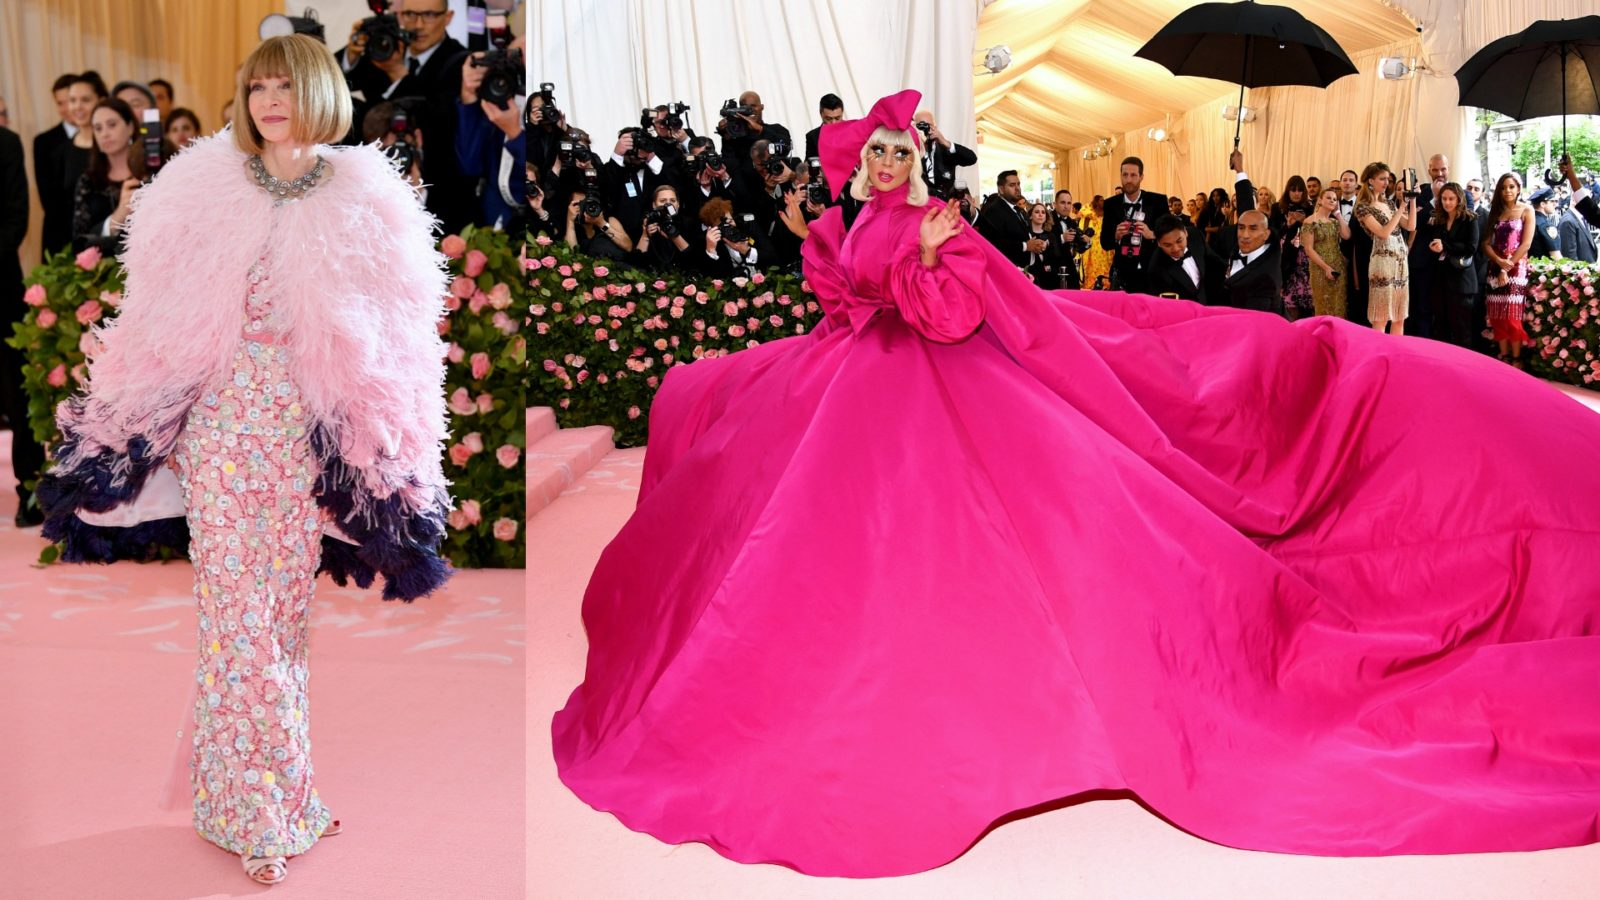 Anna Wintour and Lady Gaga chose to wear pink for the Met Gala.